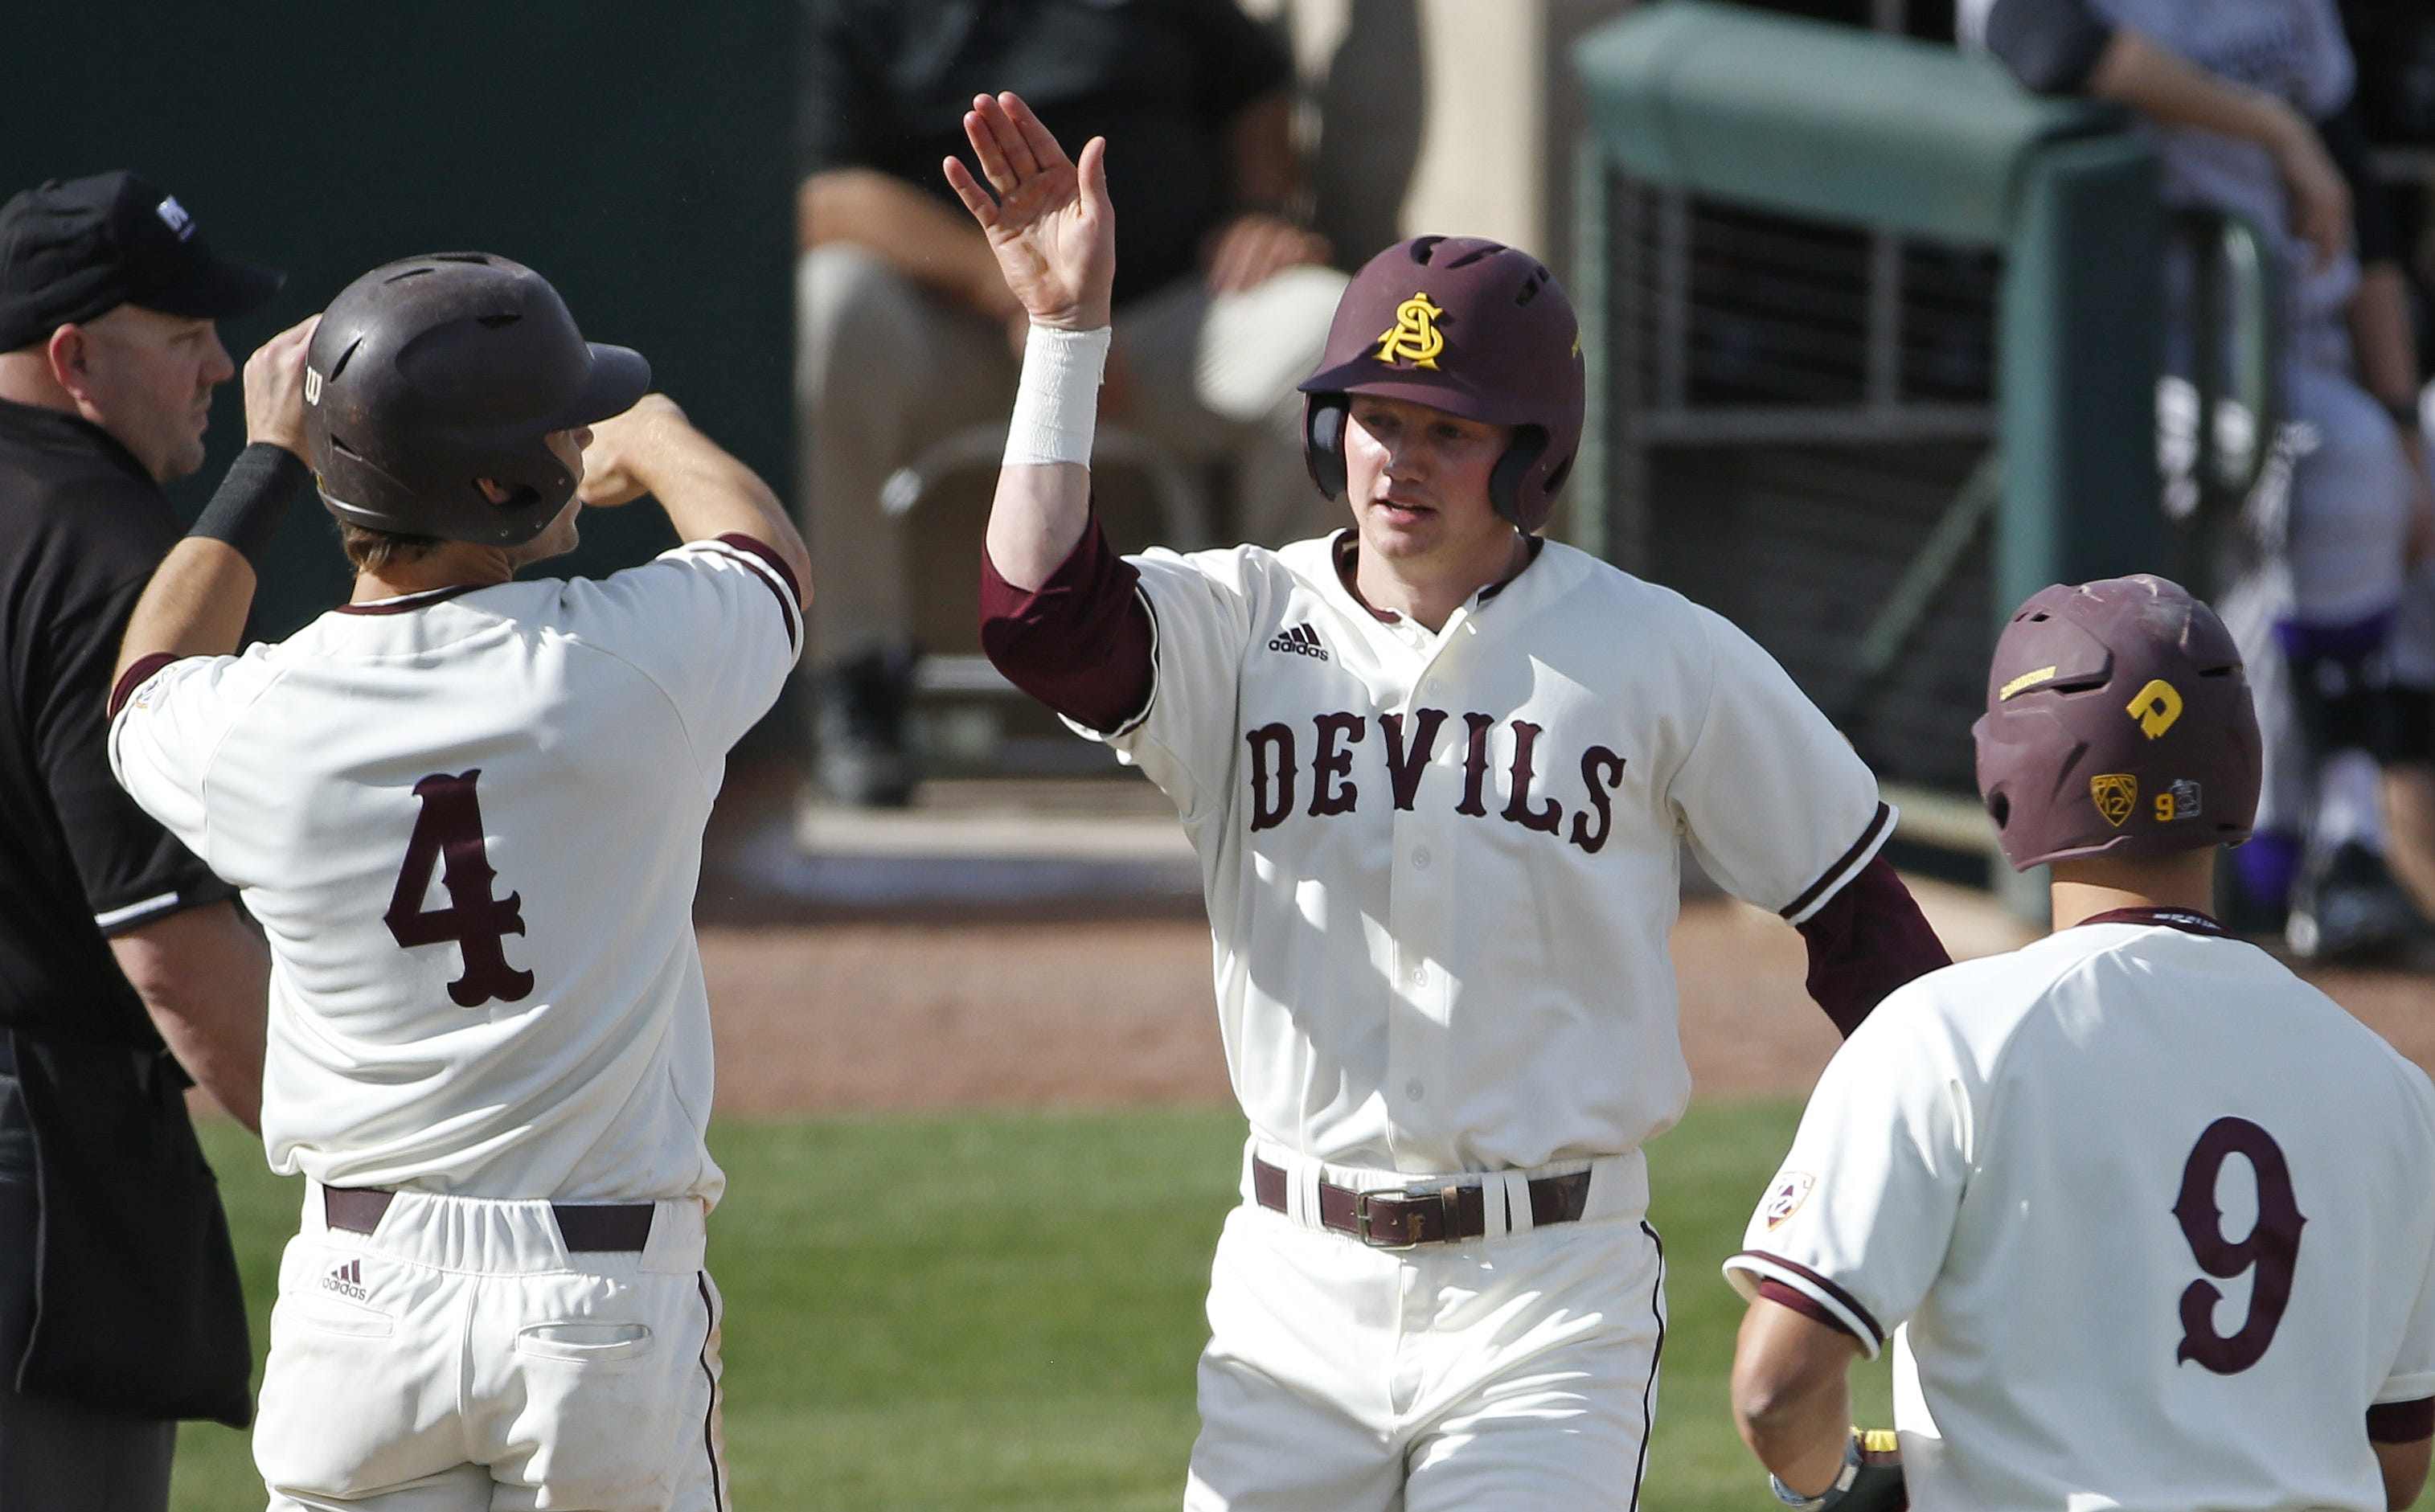 Andrew Snow leads ASU baseball to win with four hits